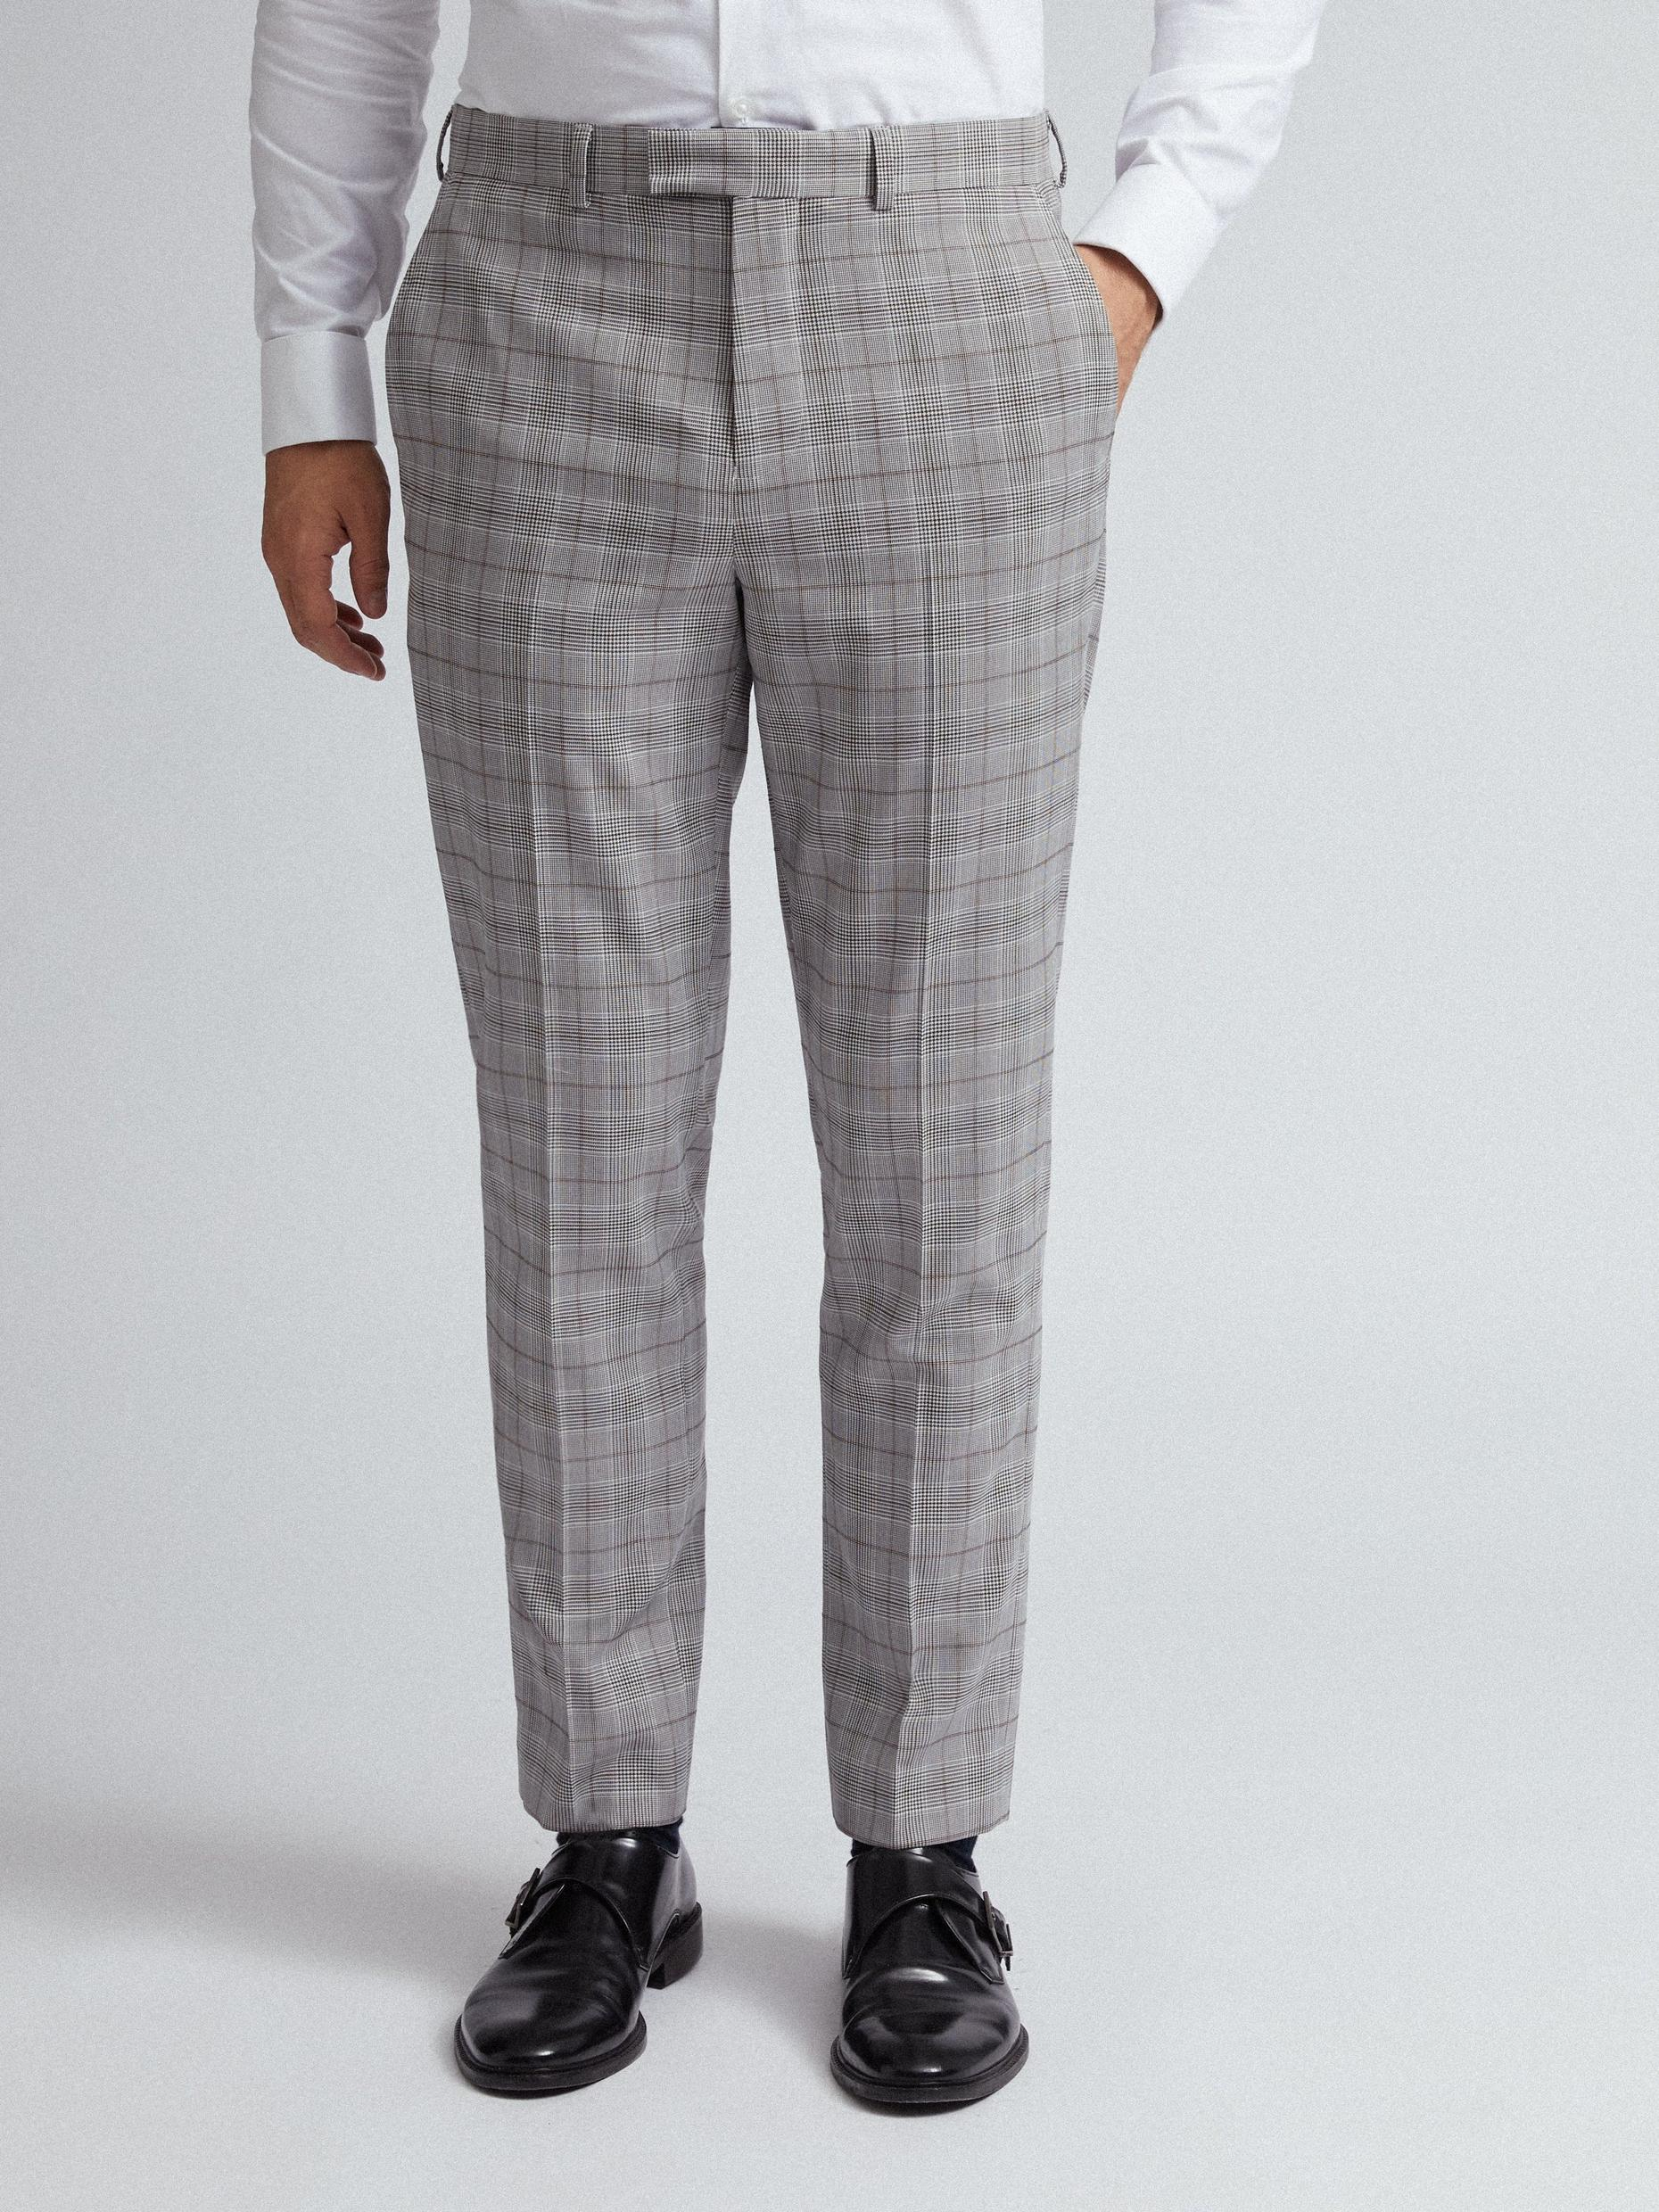 Grey and Neutral Slim fit suit trousers